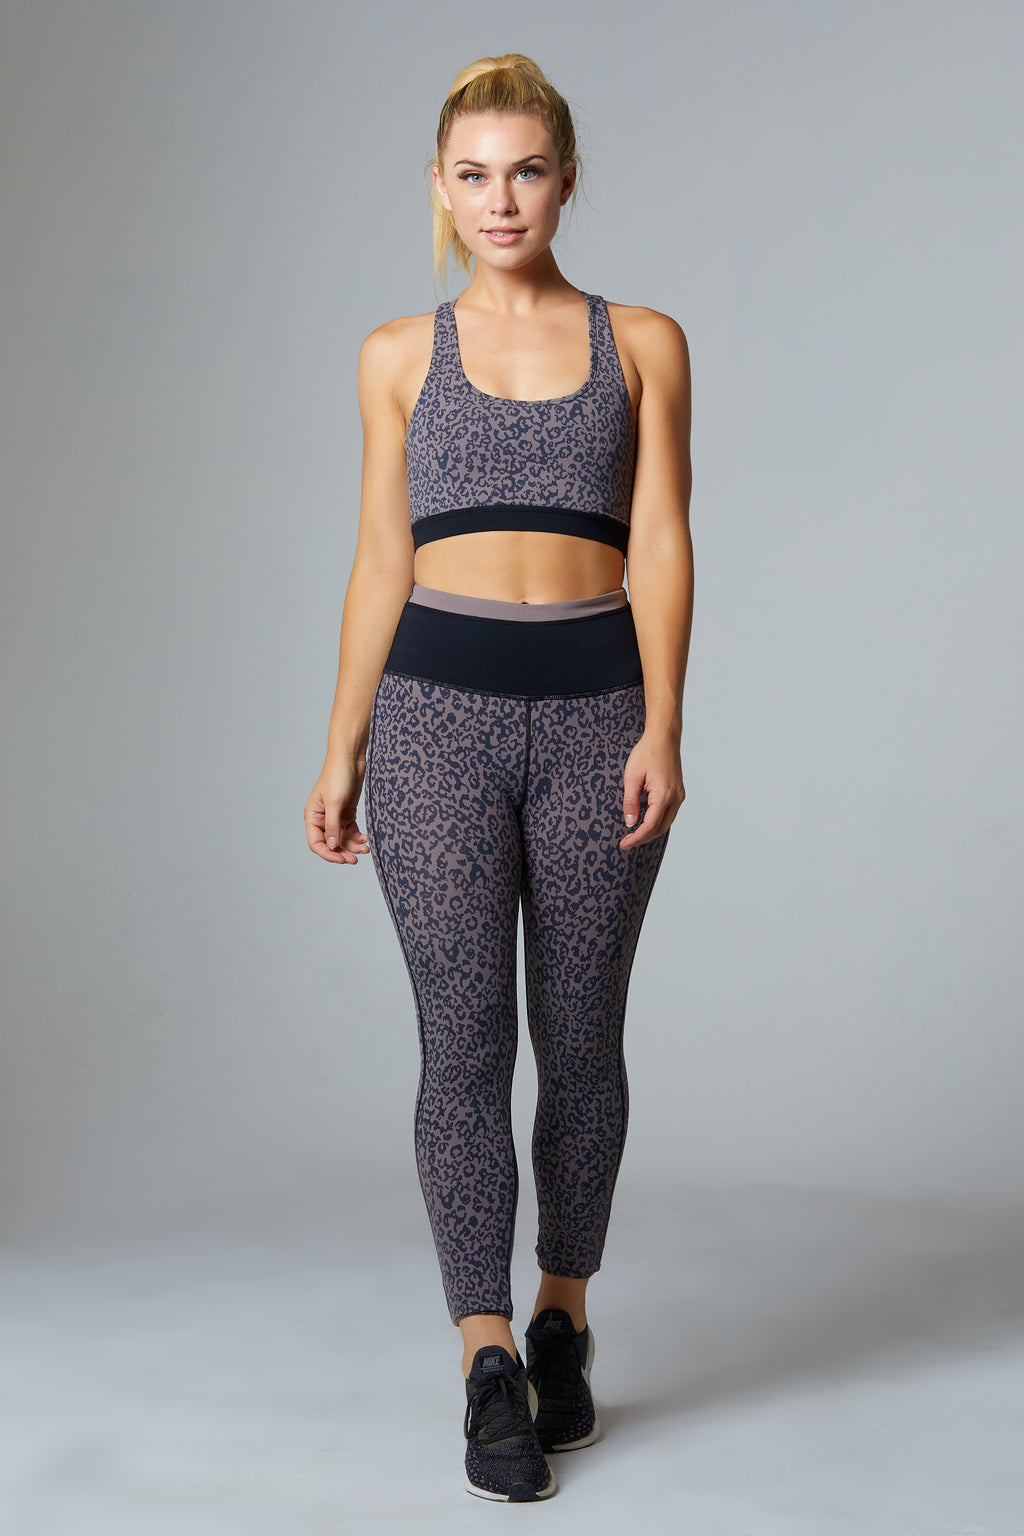 Leopard High Rise Leggings - bodyloveathletica